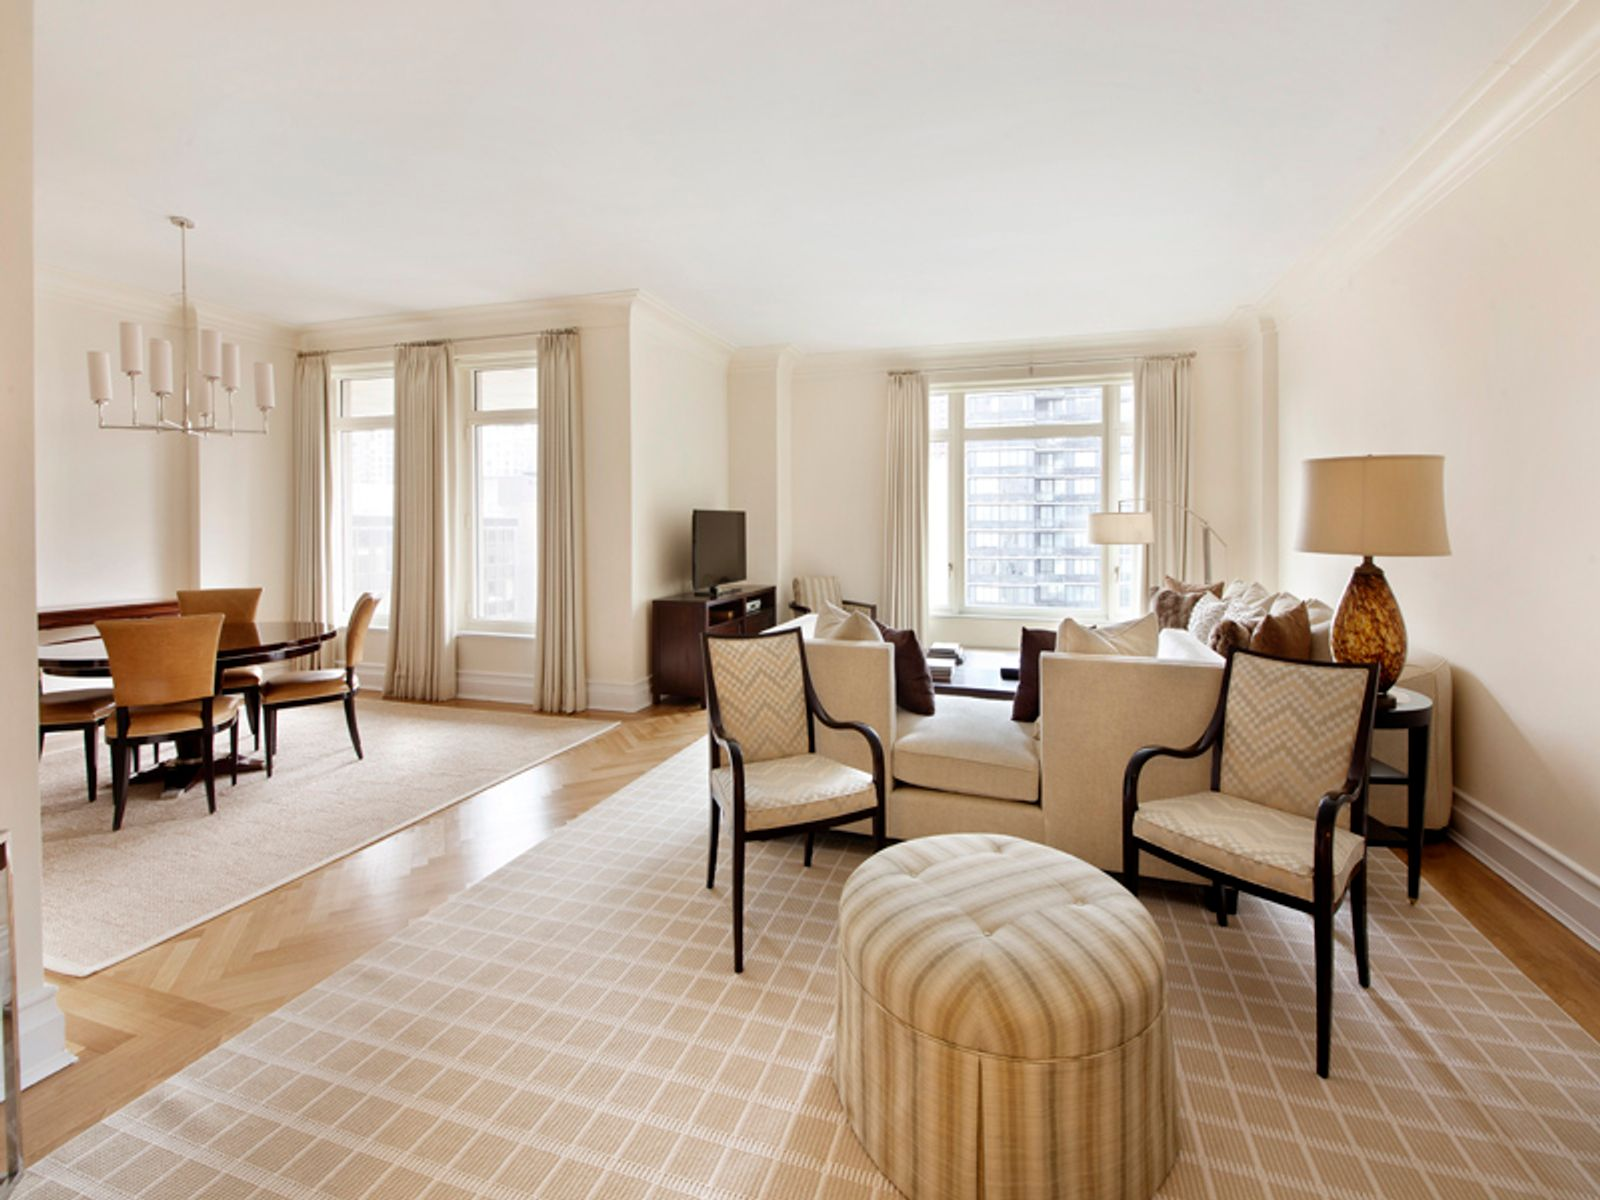 15 Central Park West Condo, New York NY Condominium - New York City Real Estate